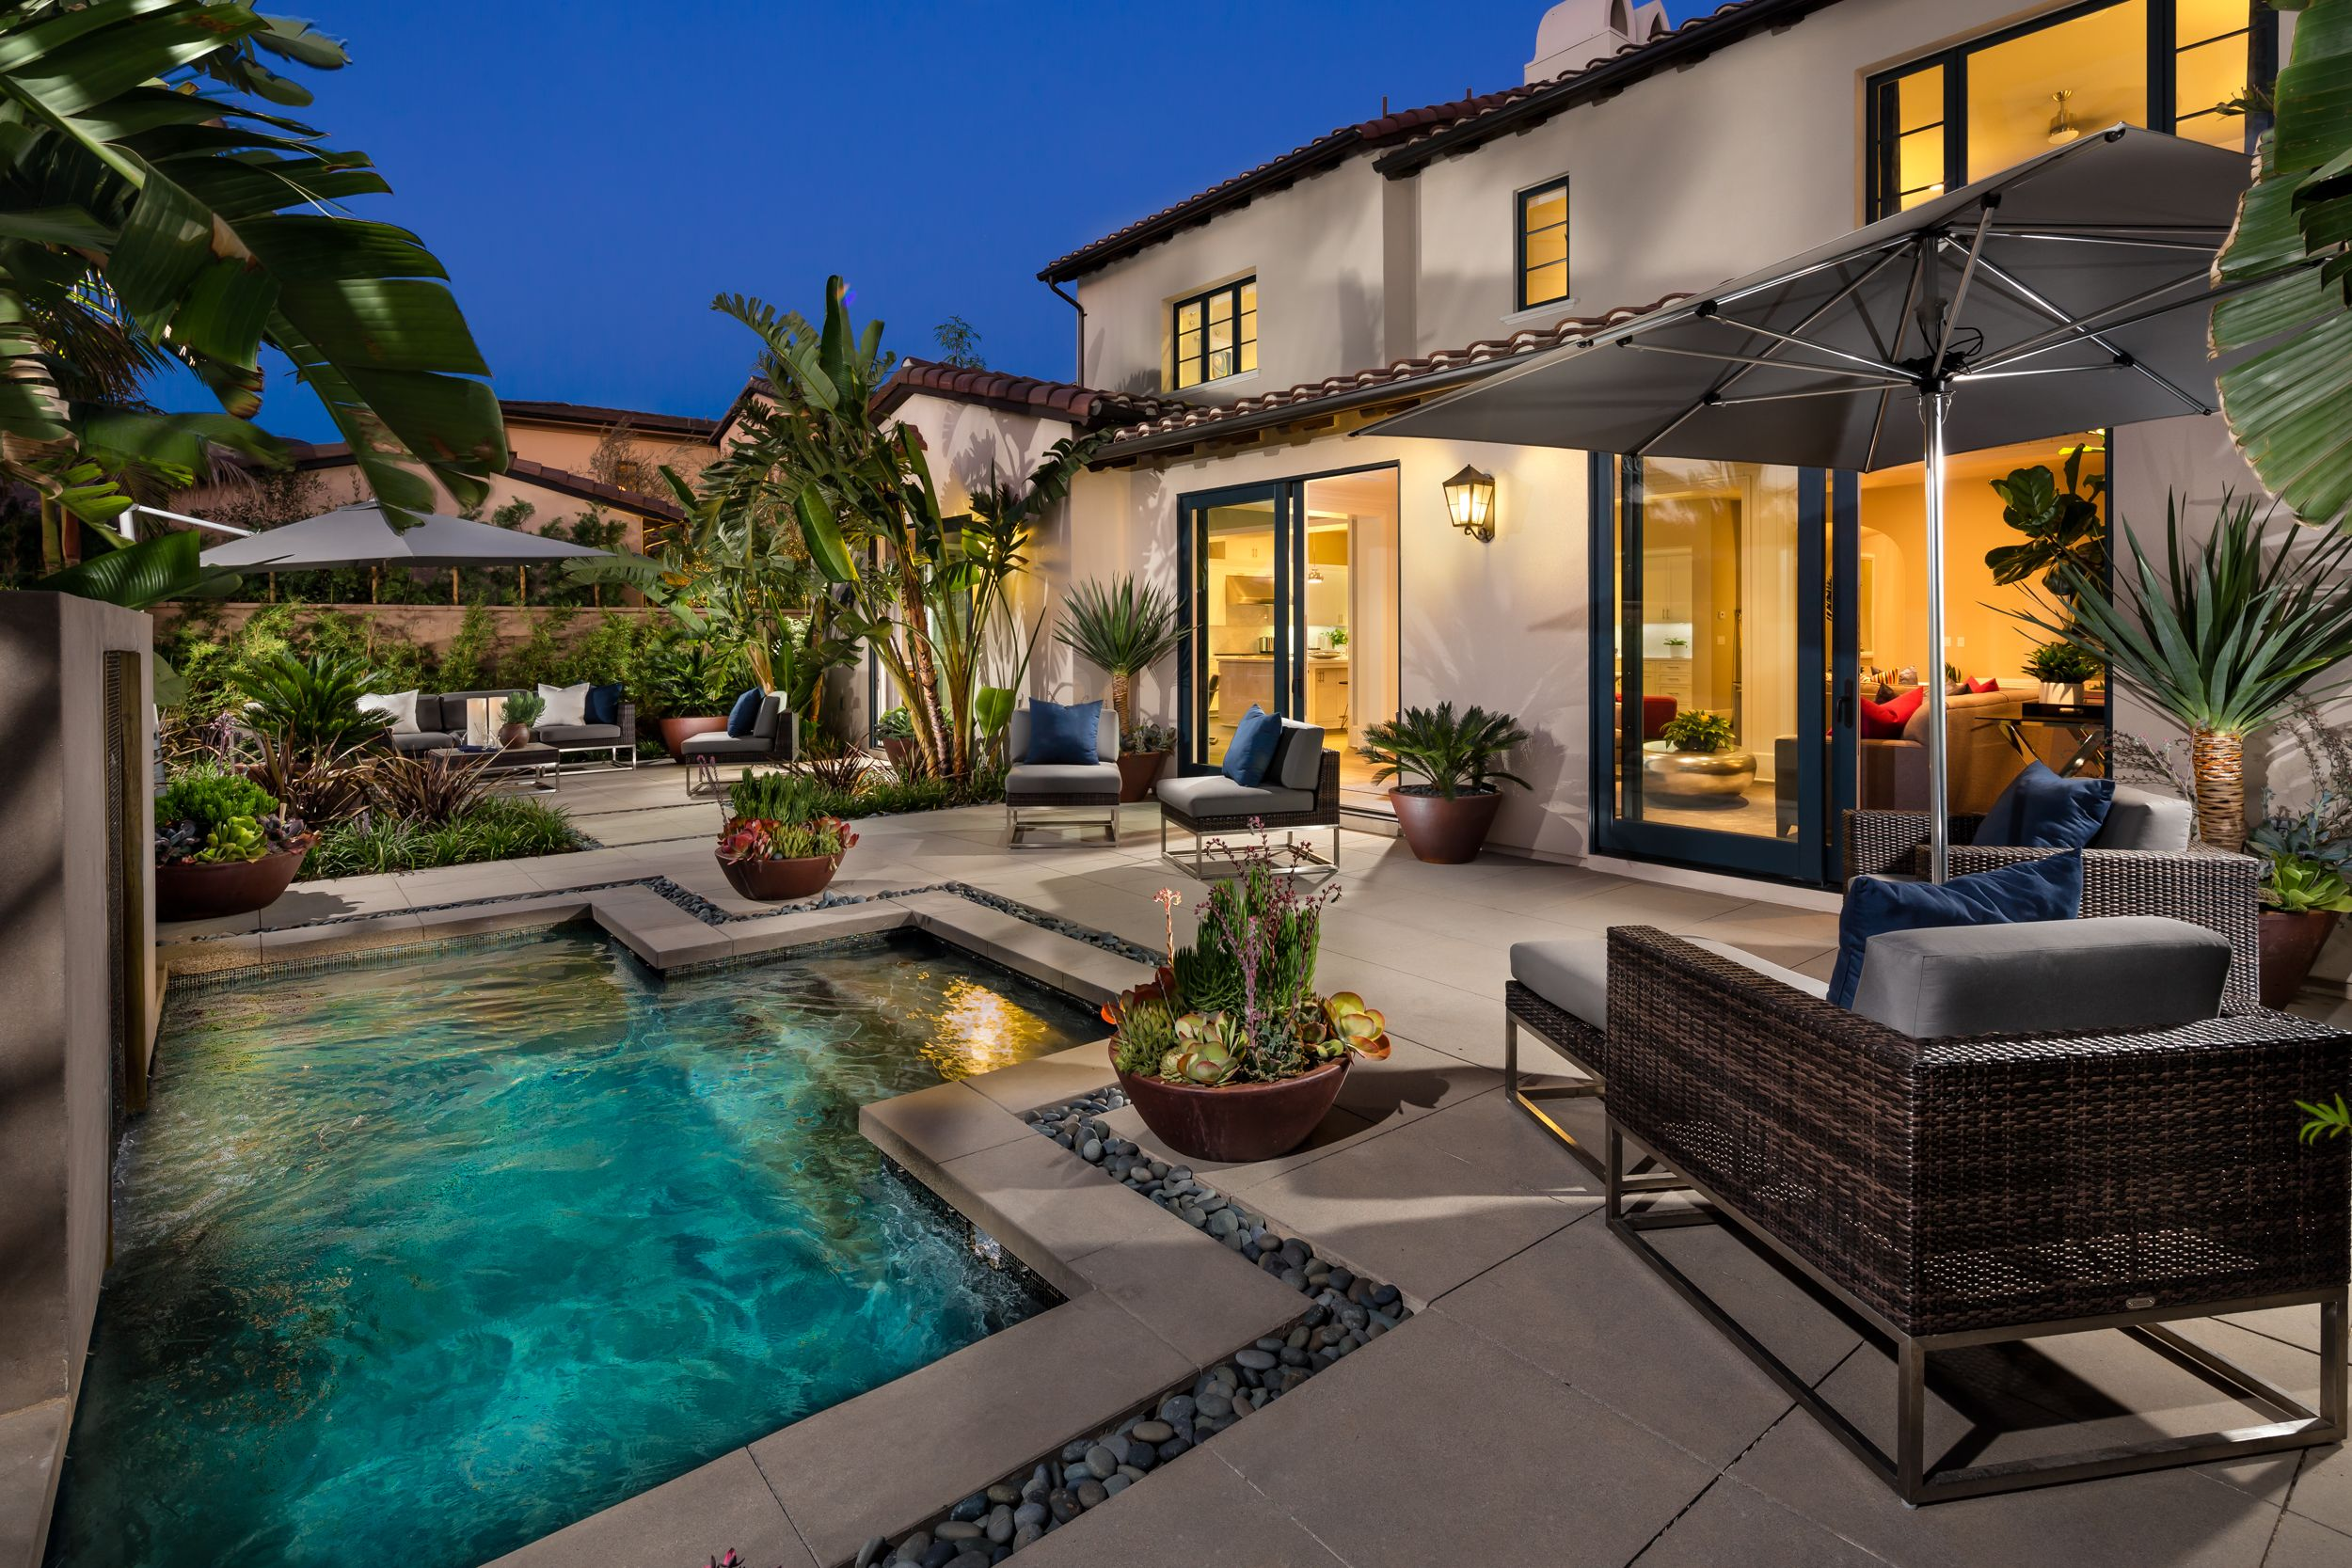 0db83cb6e84af07bb73654279de79023 Top Result 50 Awesome Cost Of Outdoor Fireplace Picture 2018 Zat3